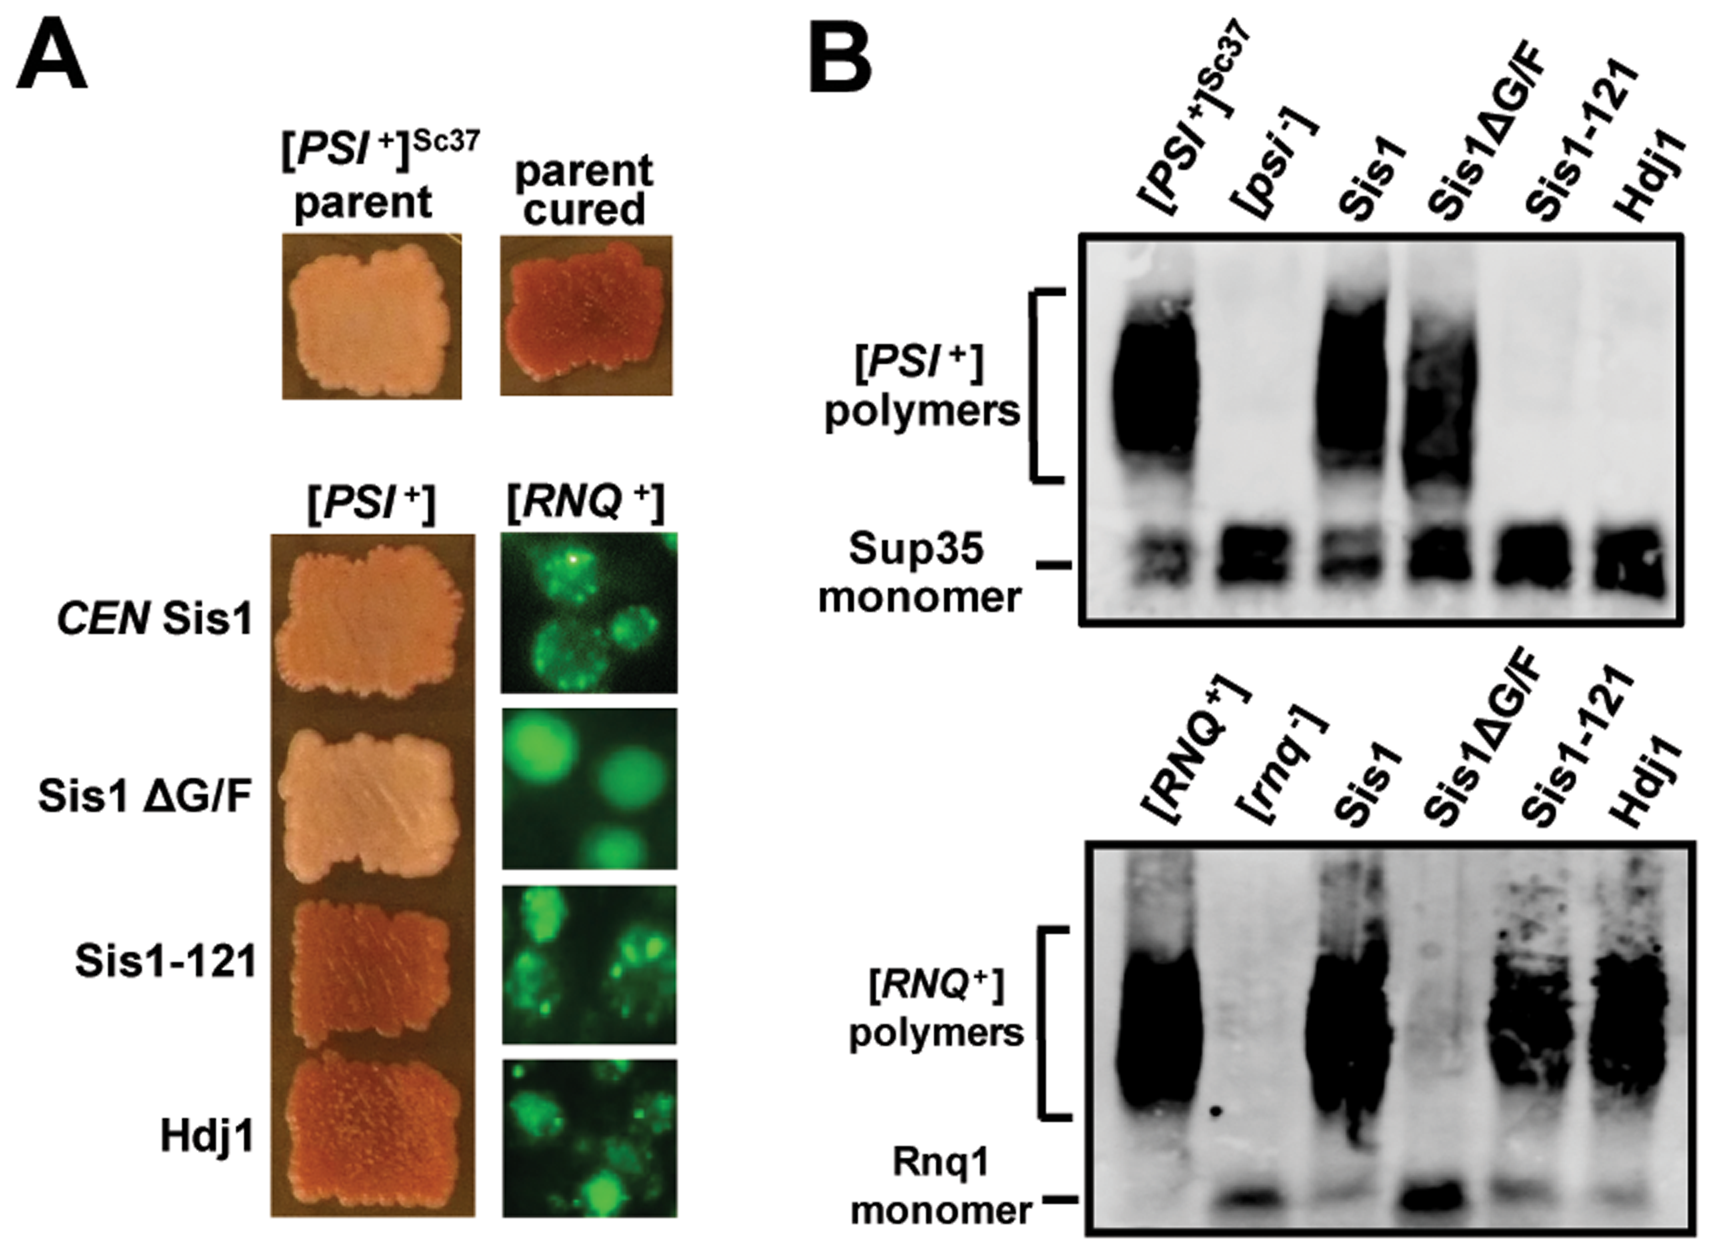 [<i>RNQ<sup>+</sup></i>] and weak [<i>PSI<sup>+</sup></i>]<sup>Sc37</sup> are reciprocally maintained by Sis1ΔG/F and Sis1-121 when assayed simultaneously in the same yeast cells.